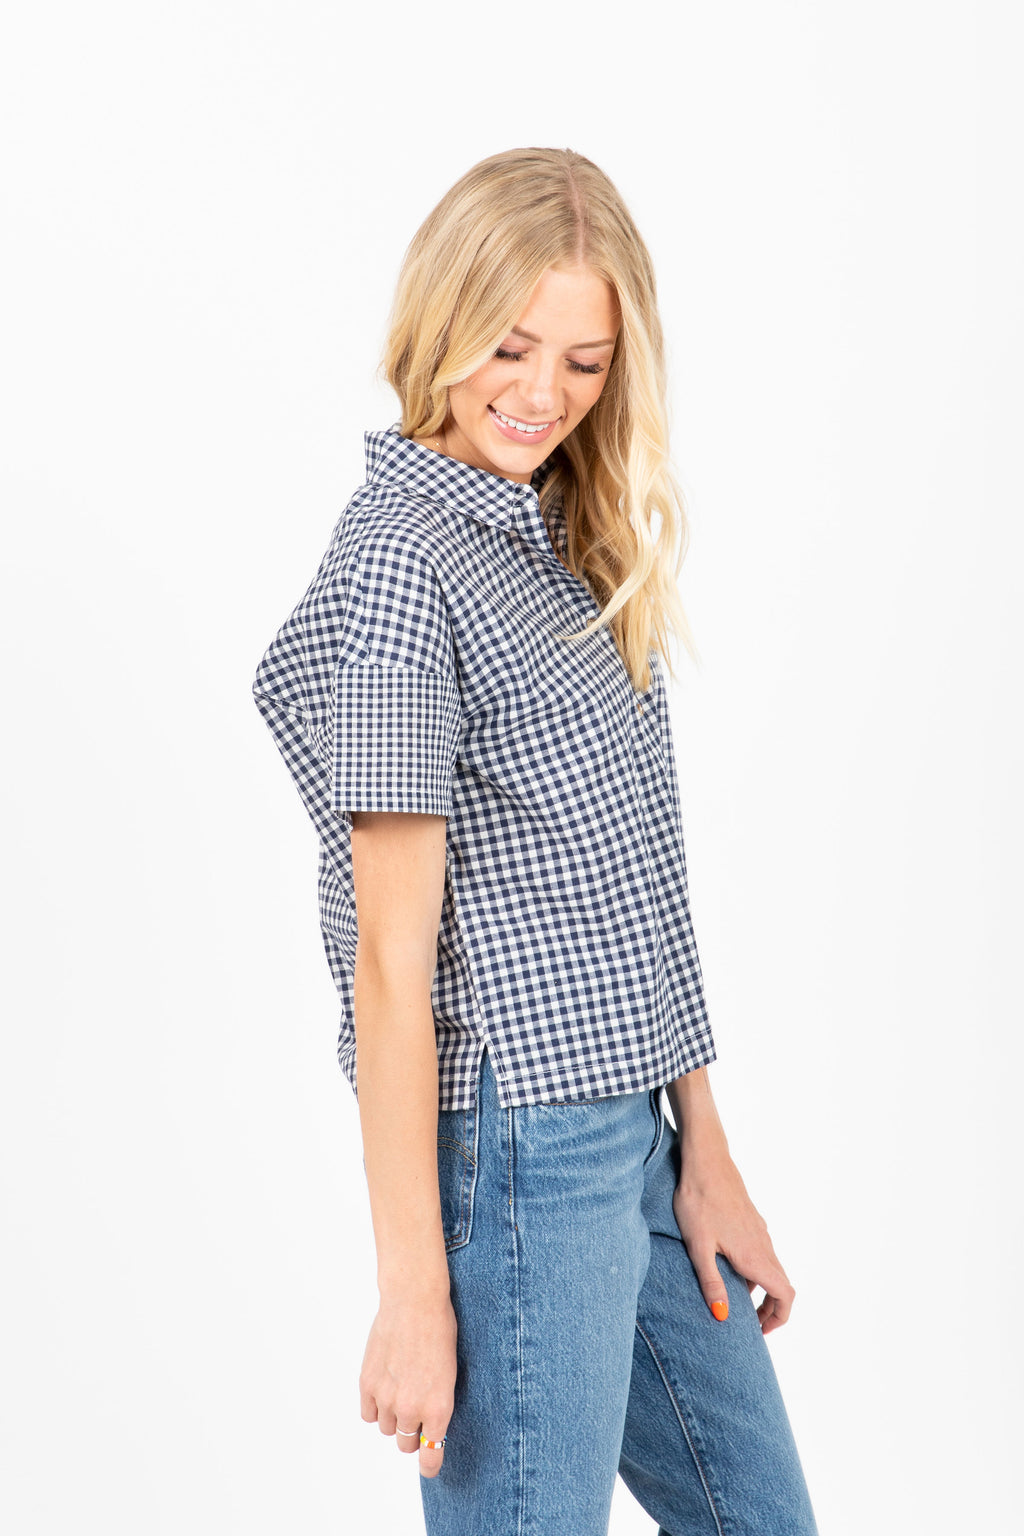 The Refresh Gingham Button Up Blouse in Navy